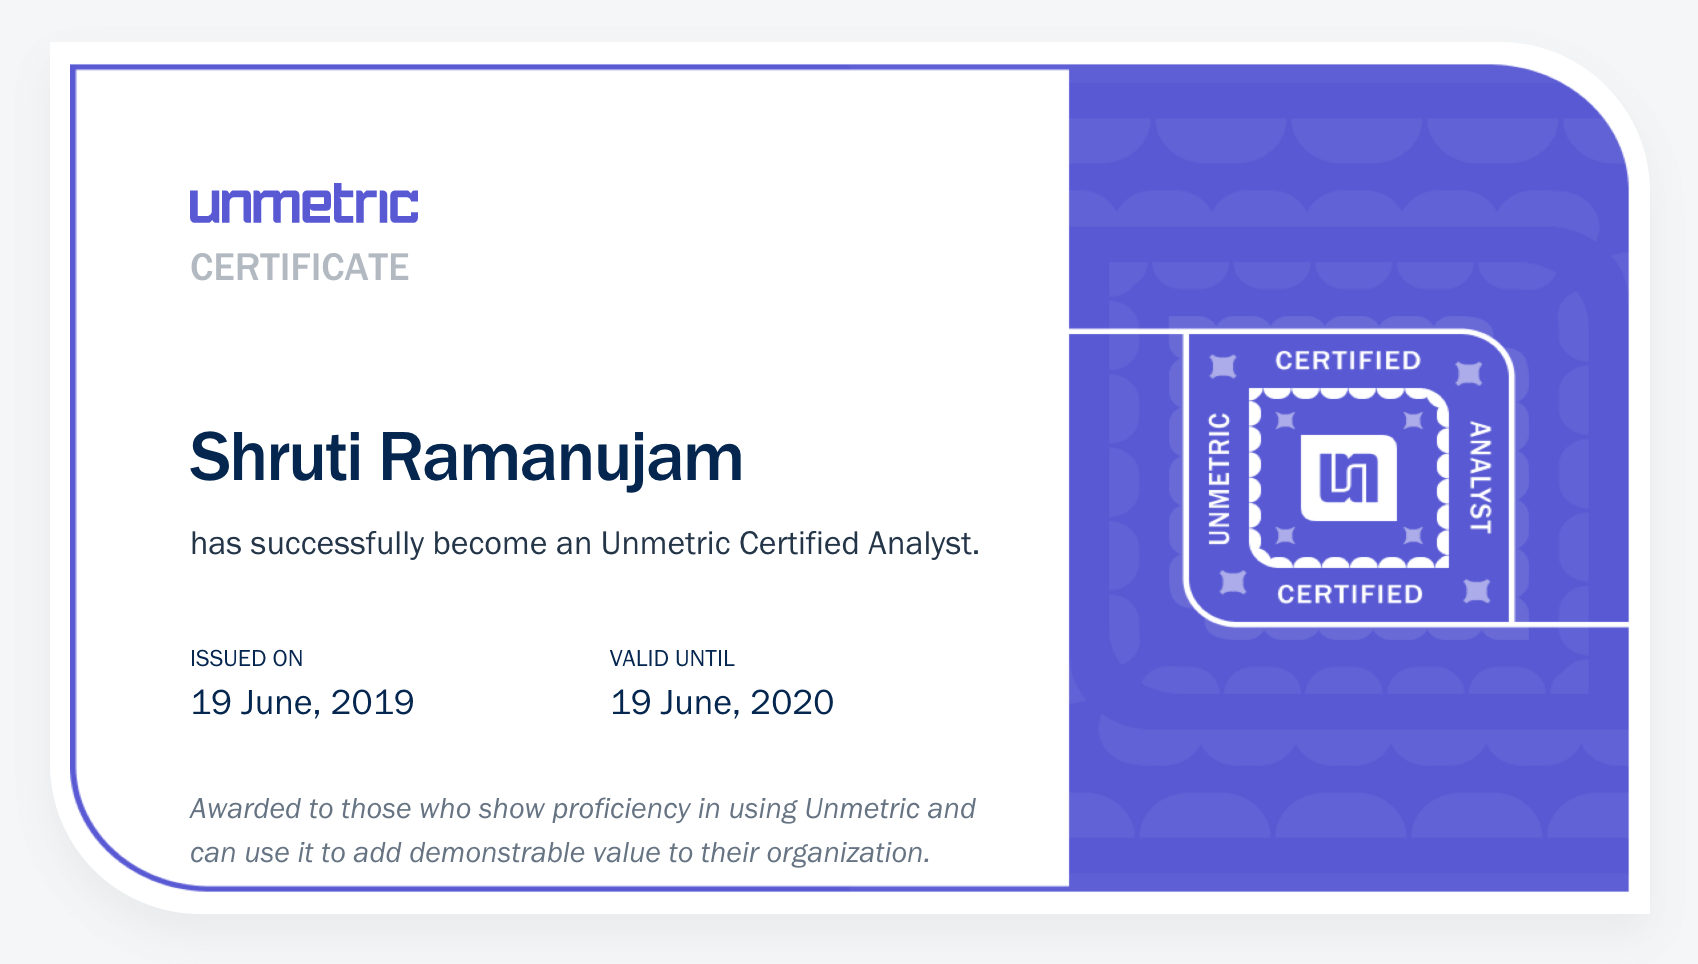 A sample certificate from the Unmetric Certified Analyst program